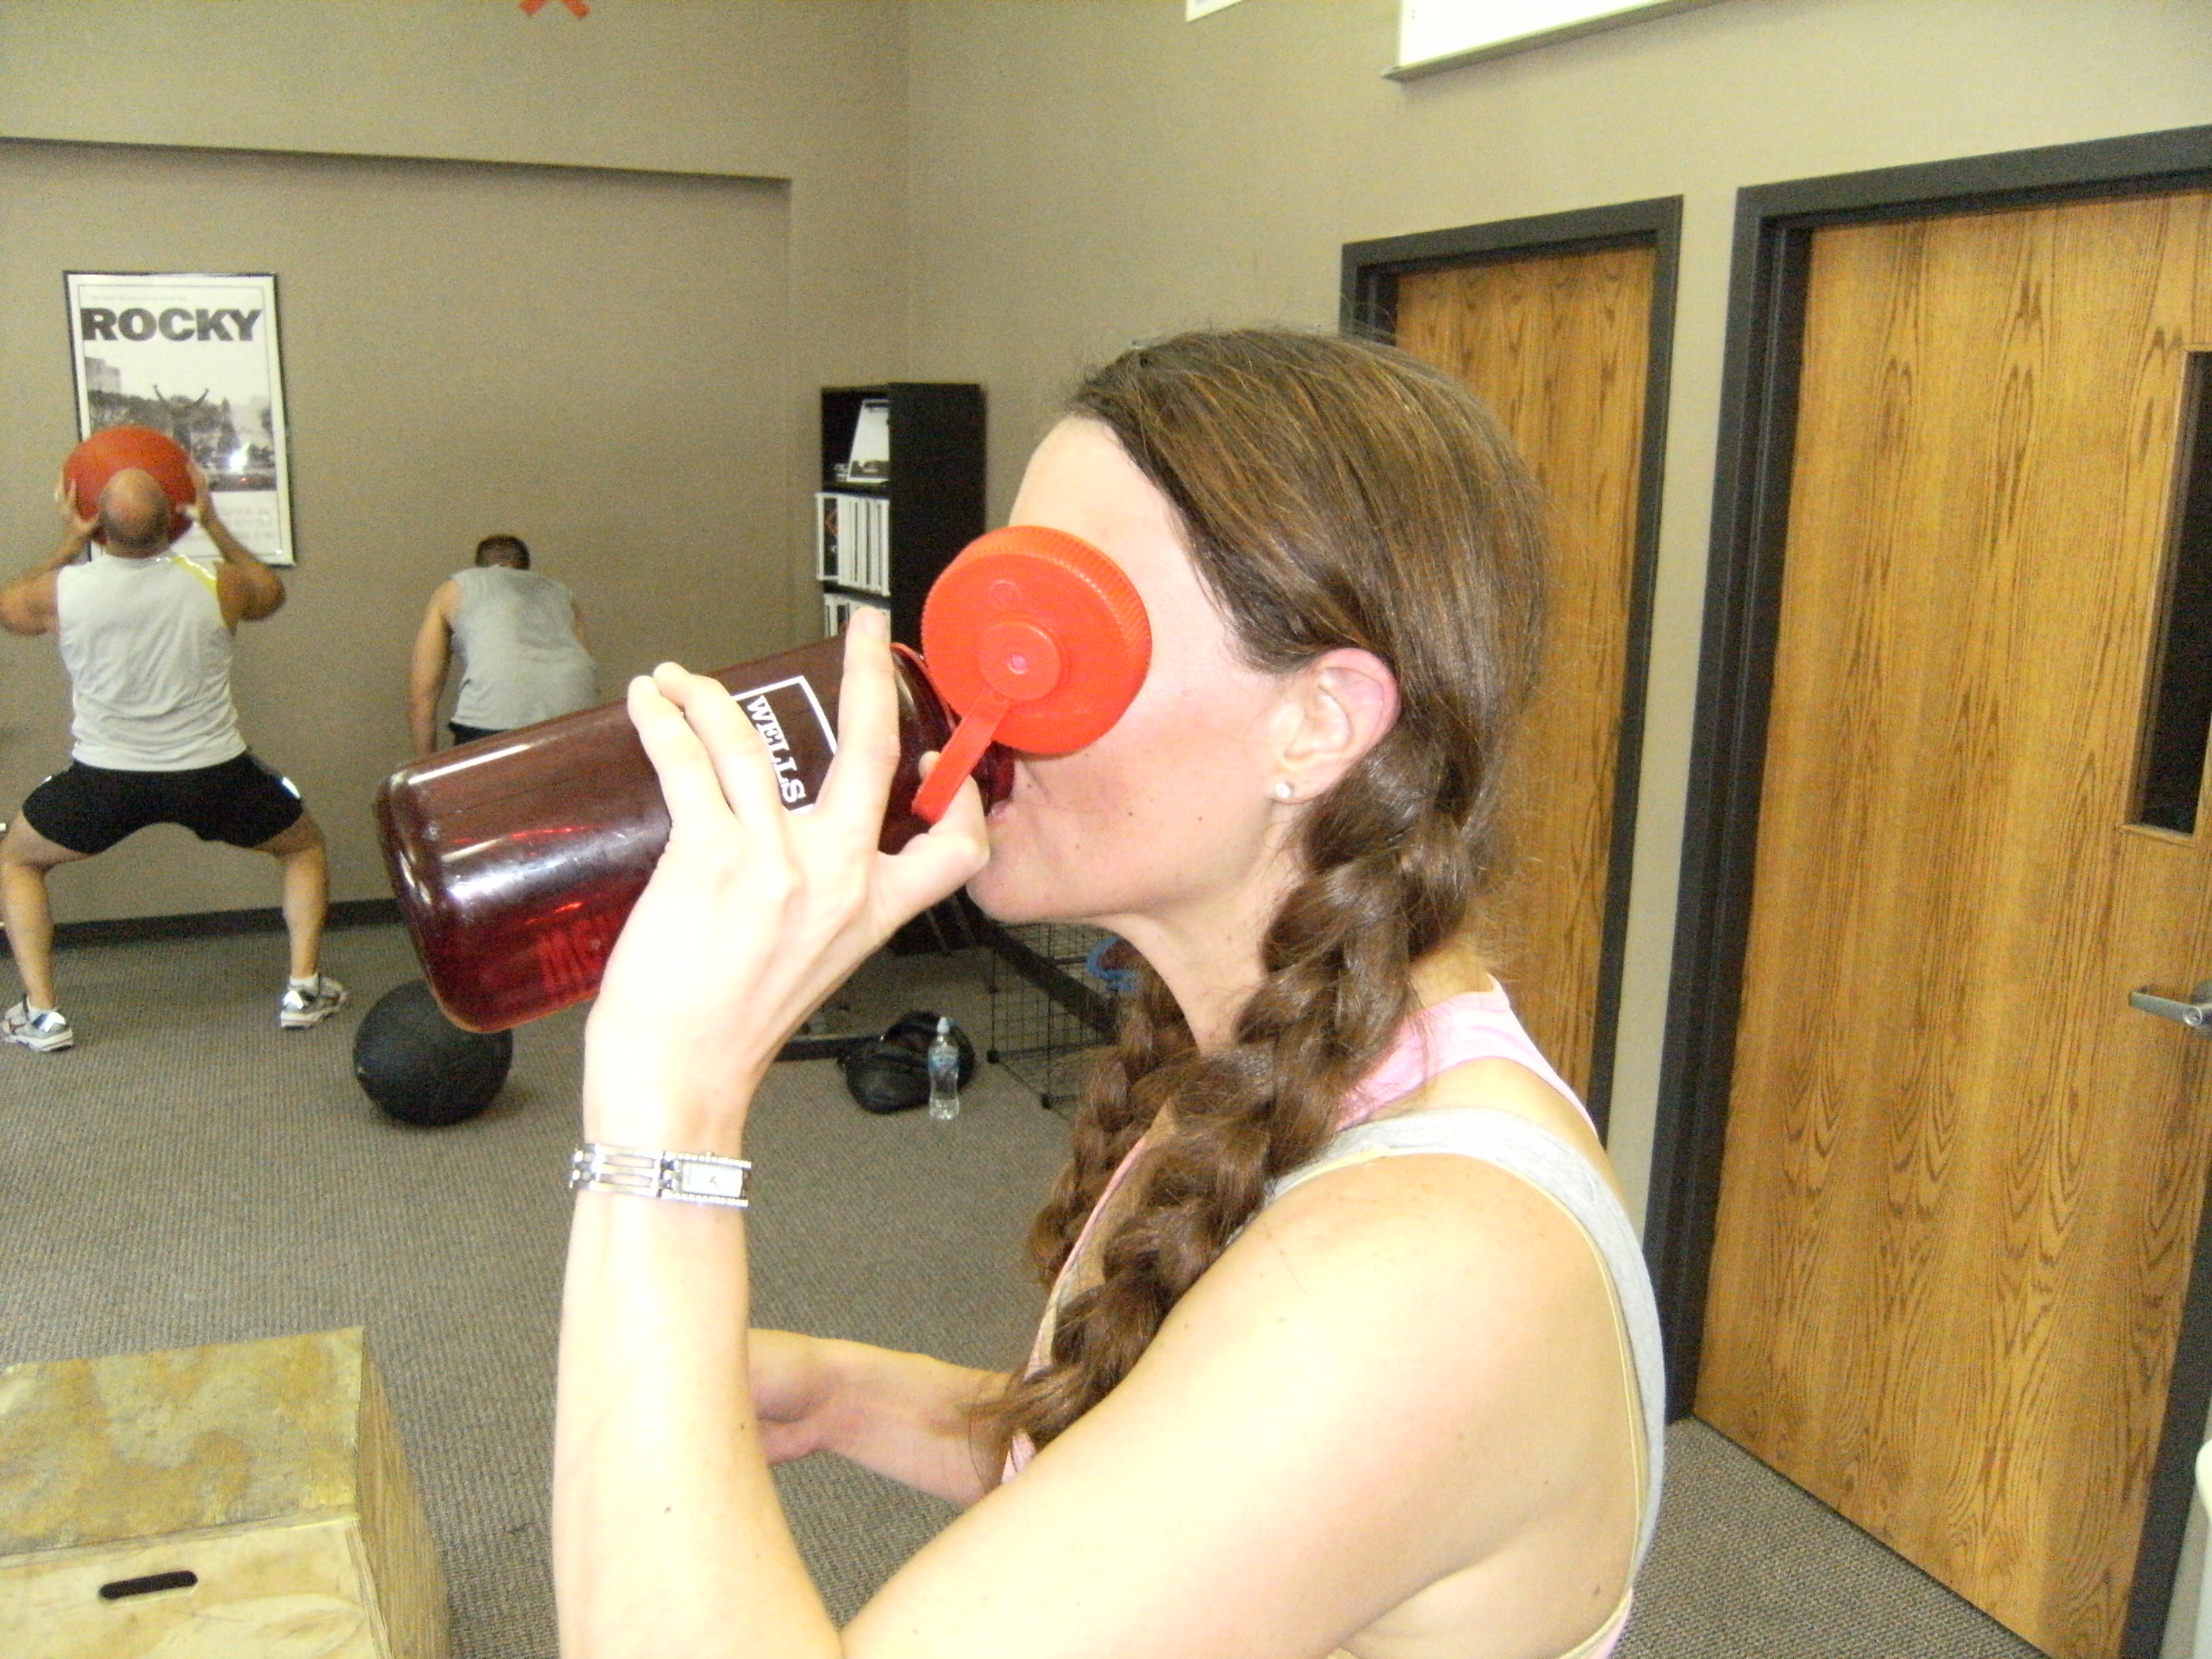 Hydrating is key in these hot summer days. Way to go Michelle!